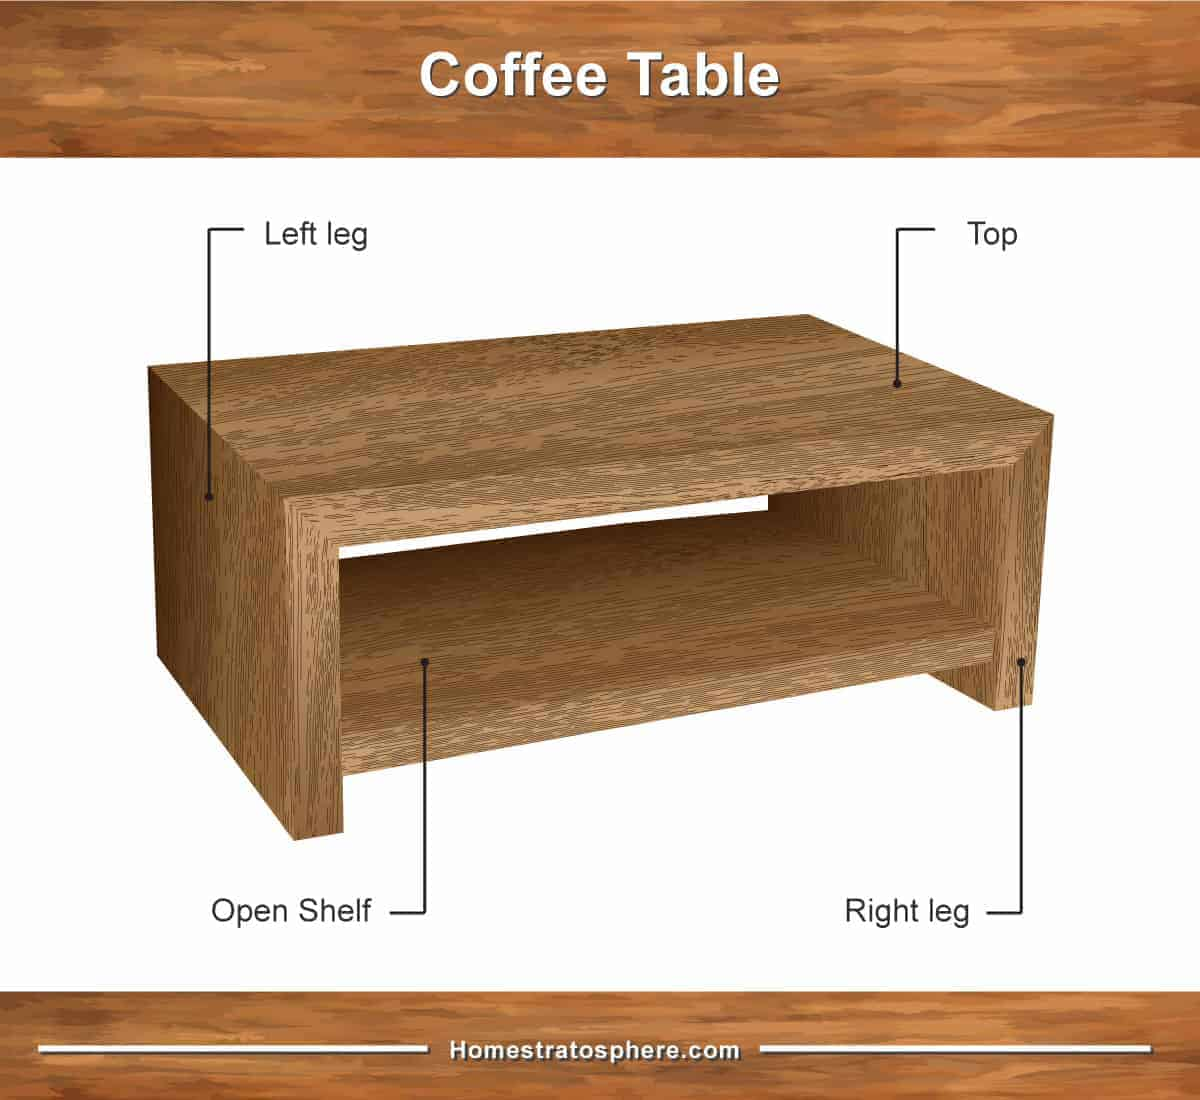 Parts of a coffee table - diagram